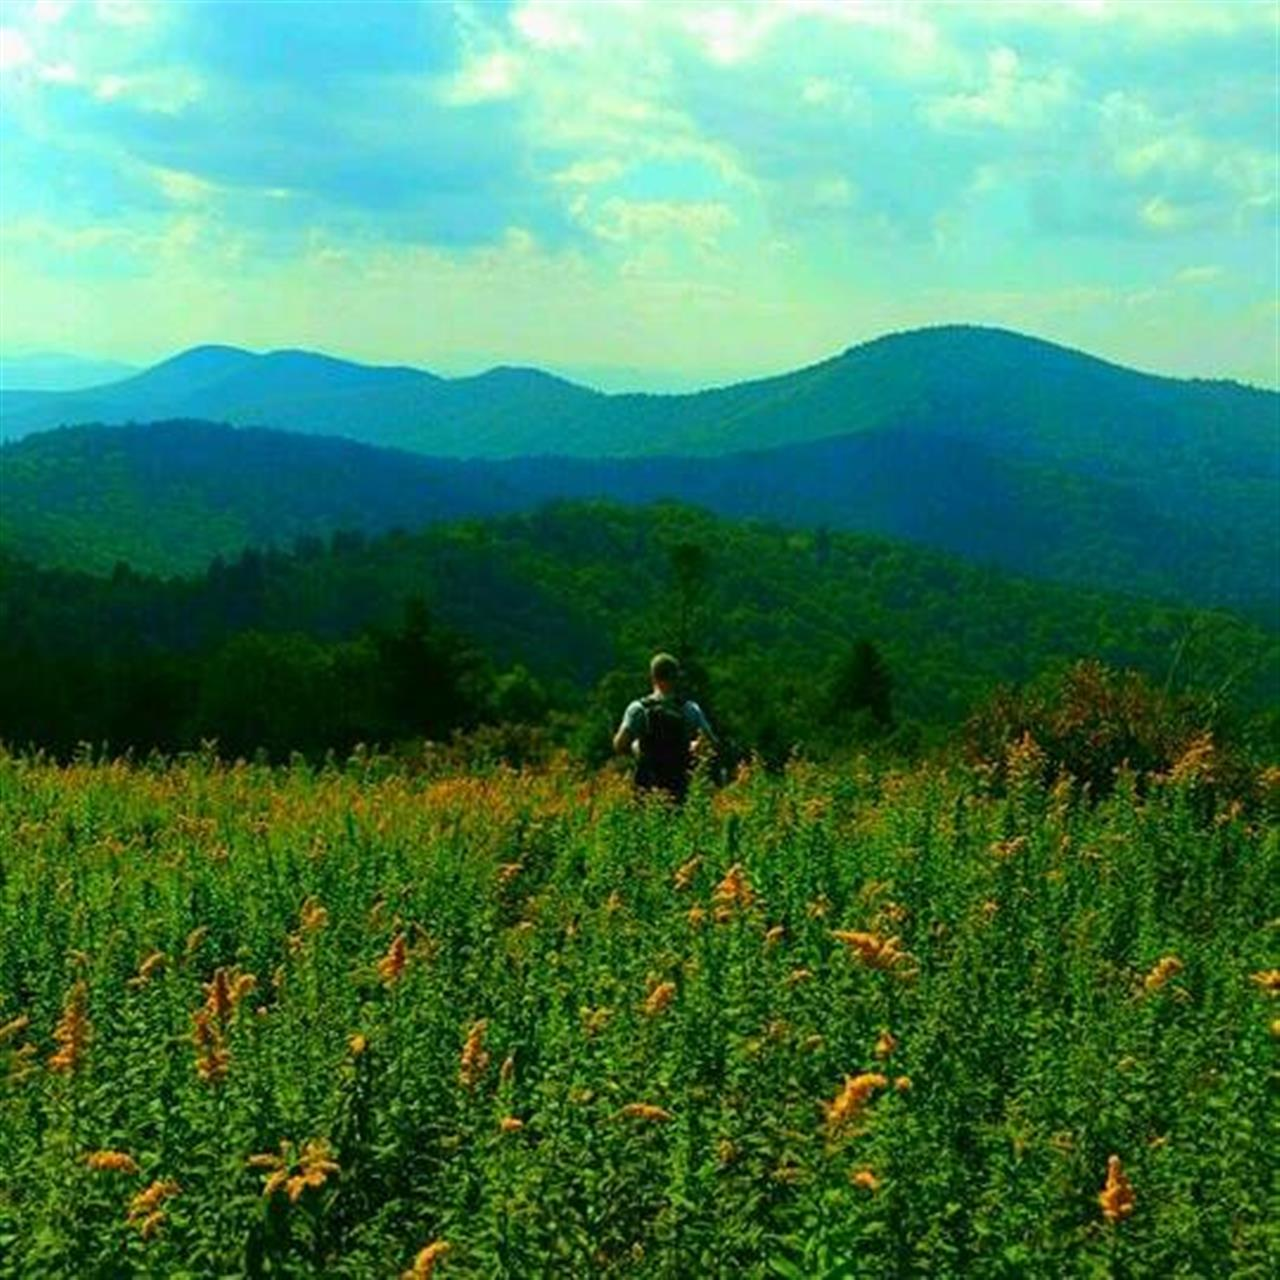 Hiking Hardy Mountain in Pisgah National Forest